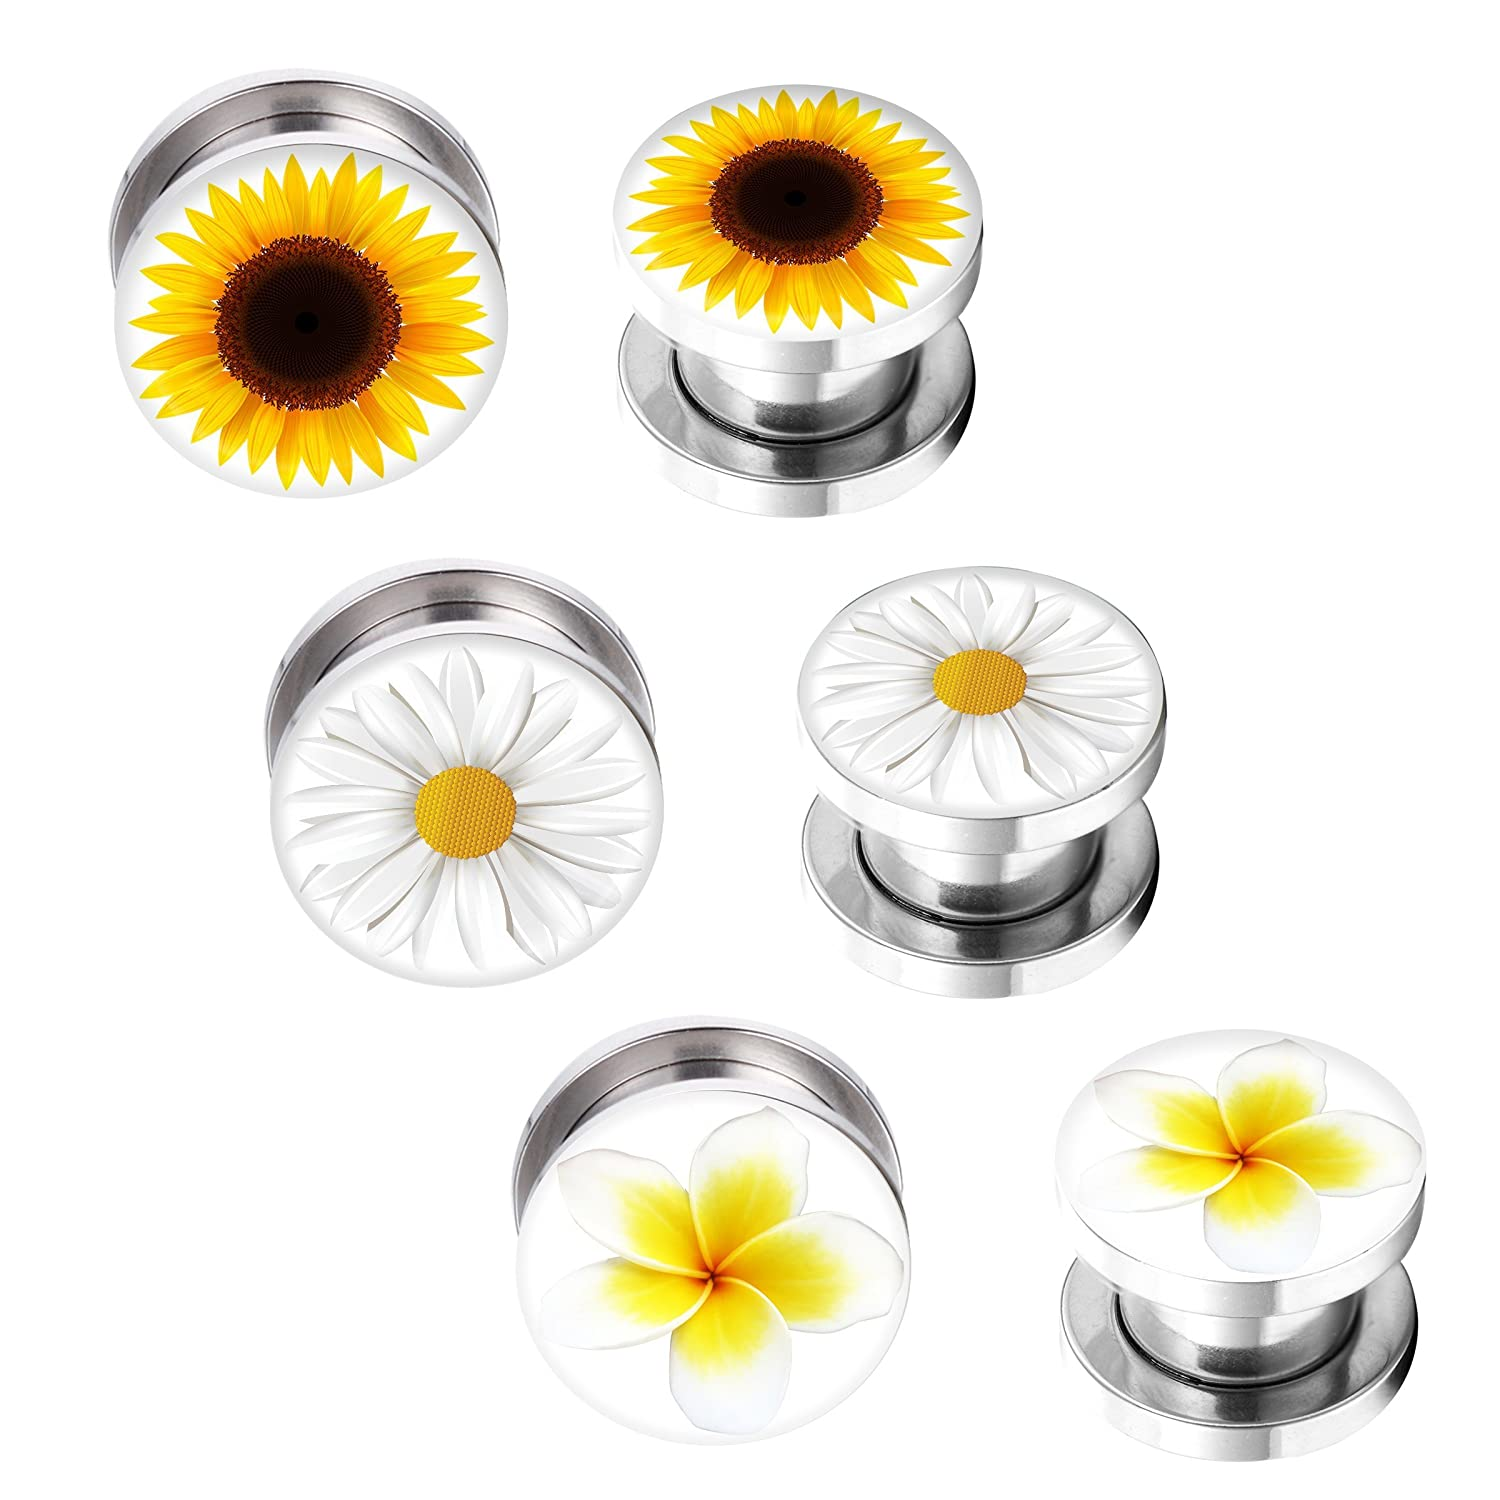 BodyJ4You Screw Fit Plugs Flower Kit Stainless Steel Plugs 2G-12mm (6 Pieces) PL6219-12mm